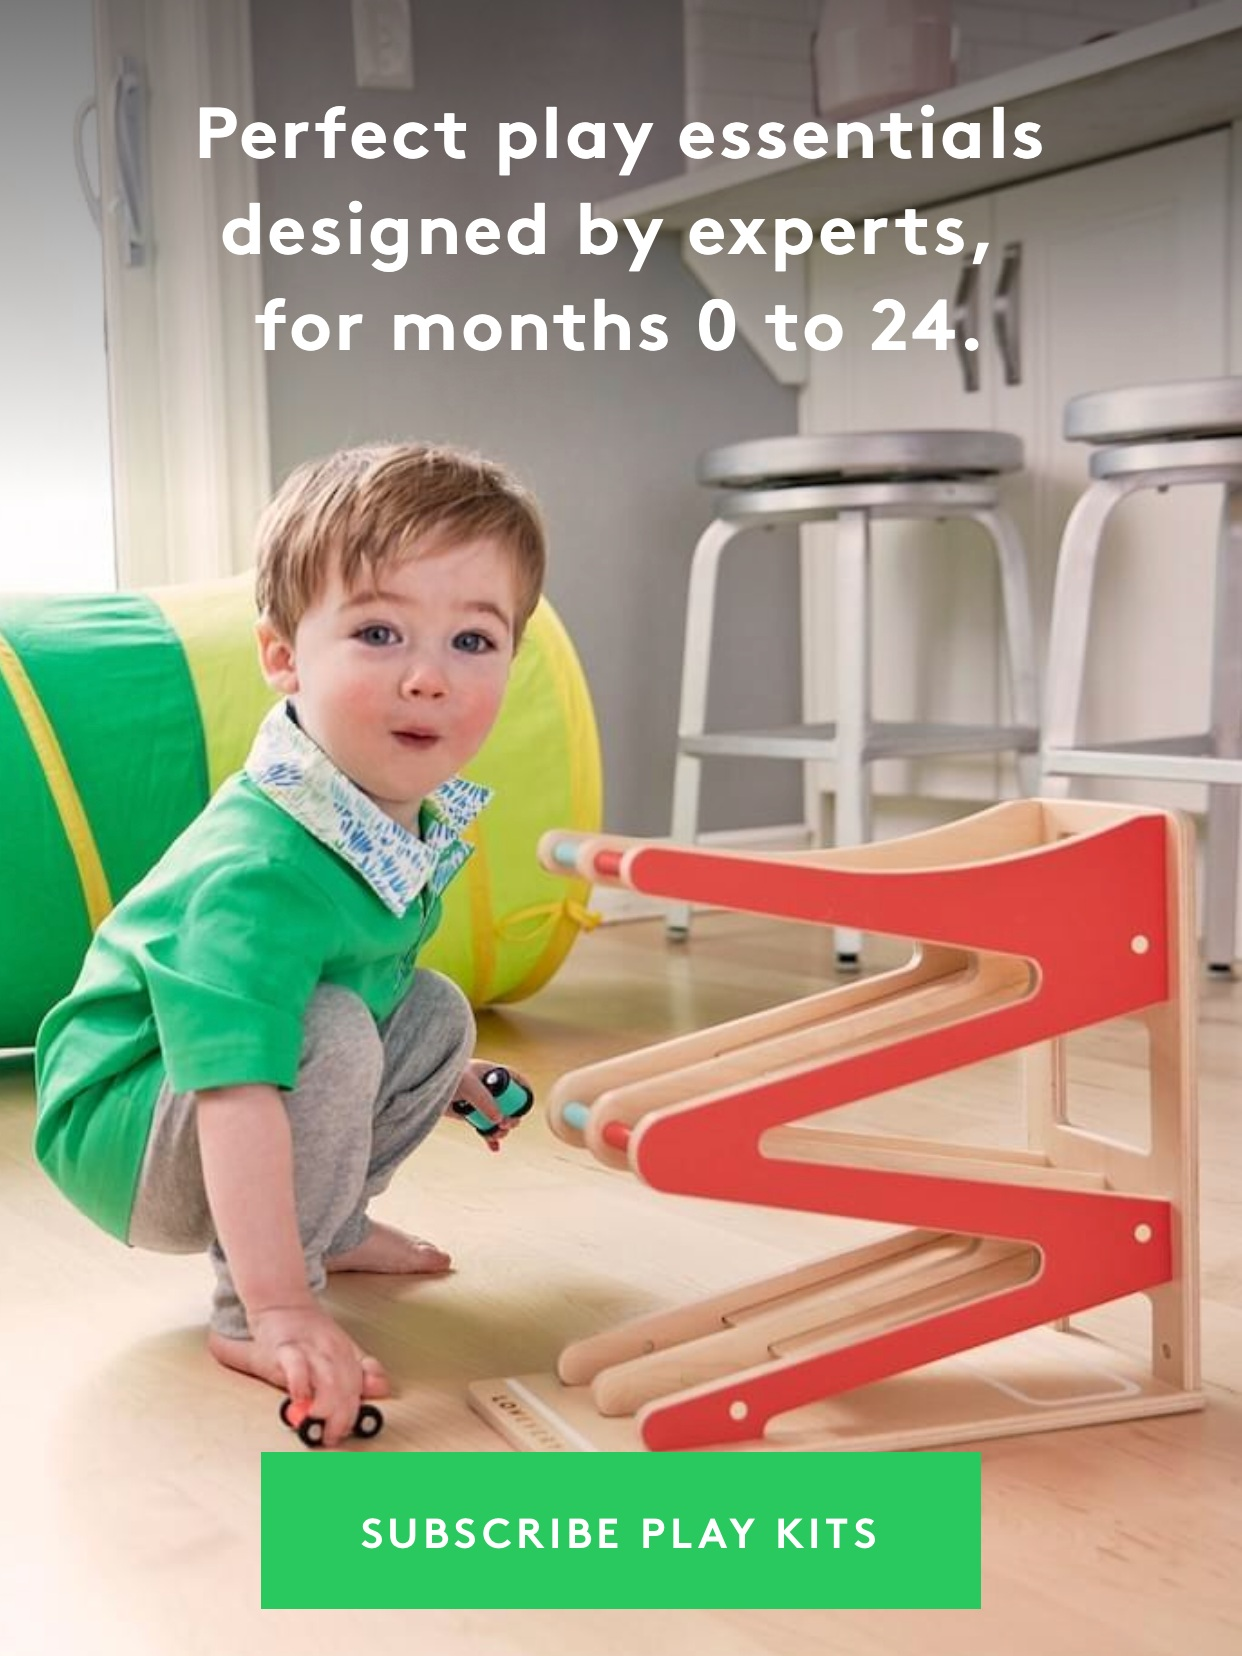 - One of 2020's Time Magazine best inventions! An aesthetically pleasing monthly toy subscription for ages 0-2! Would make a great gift!Find it here.